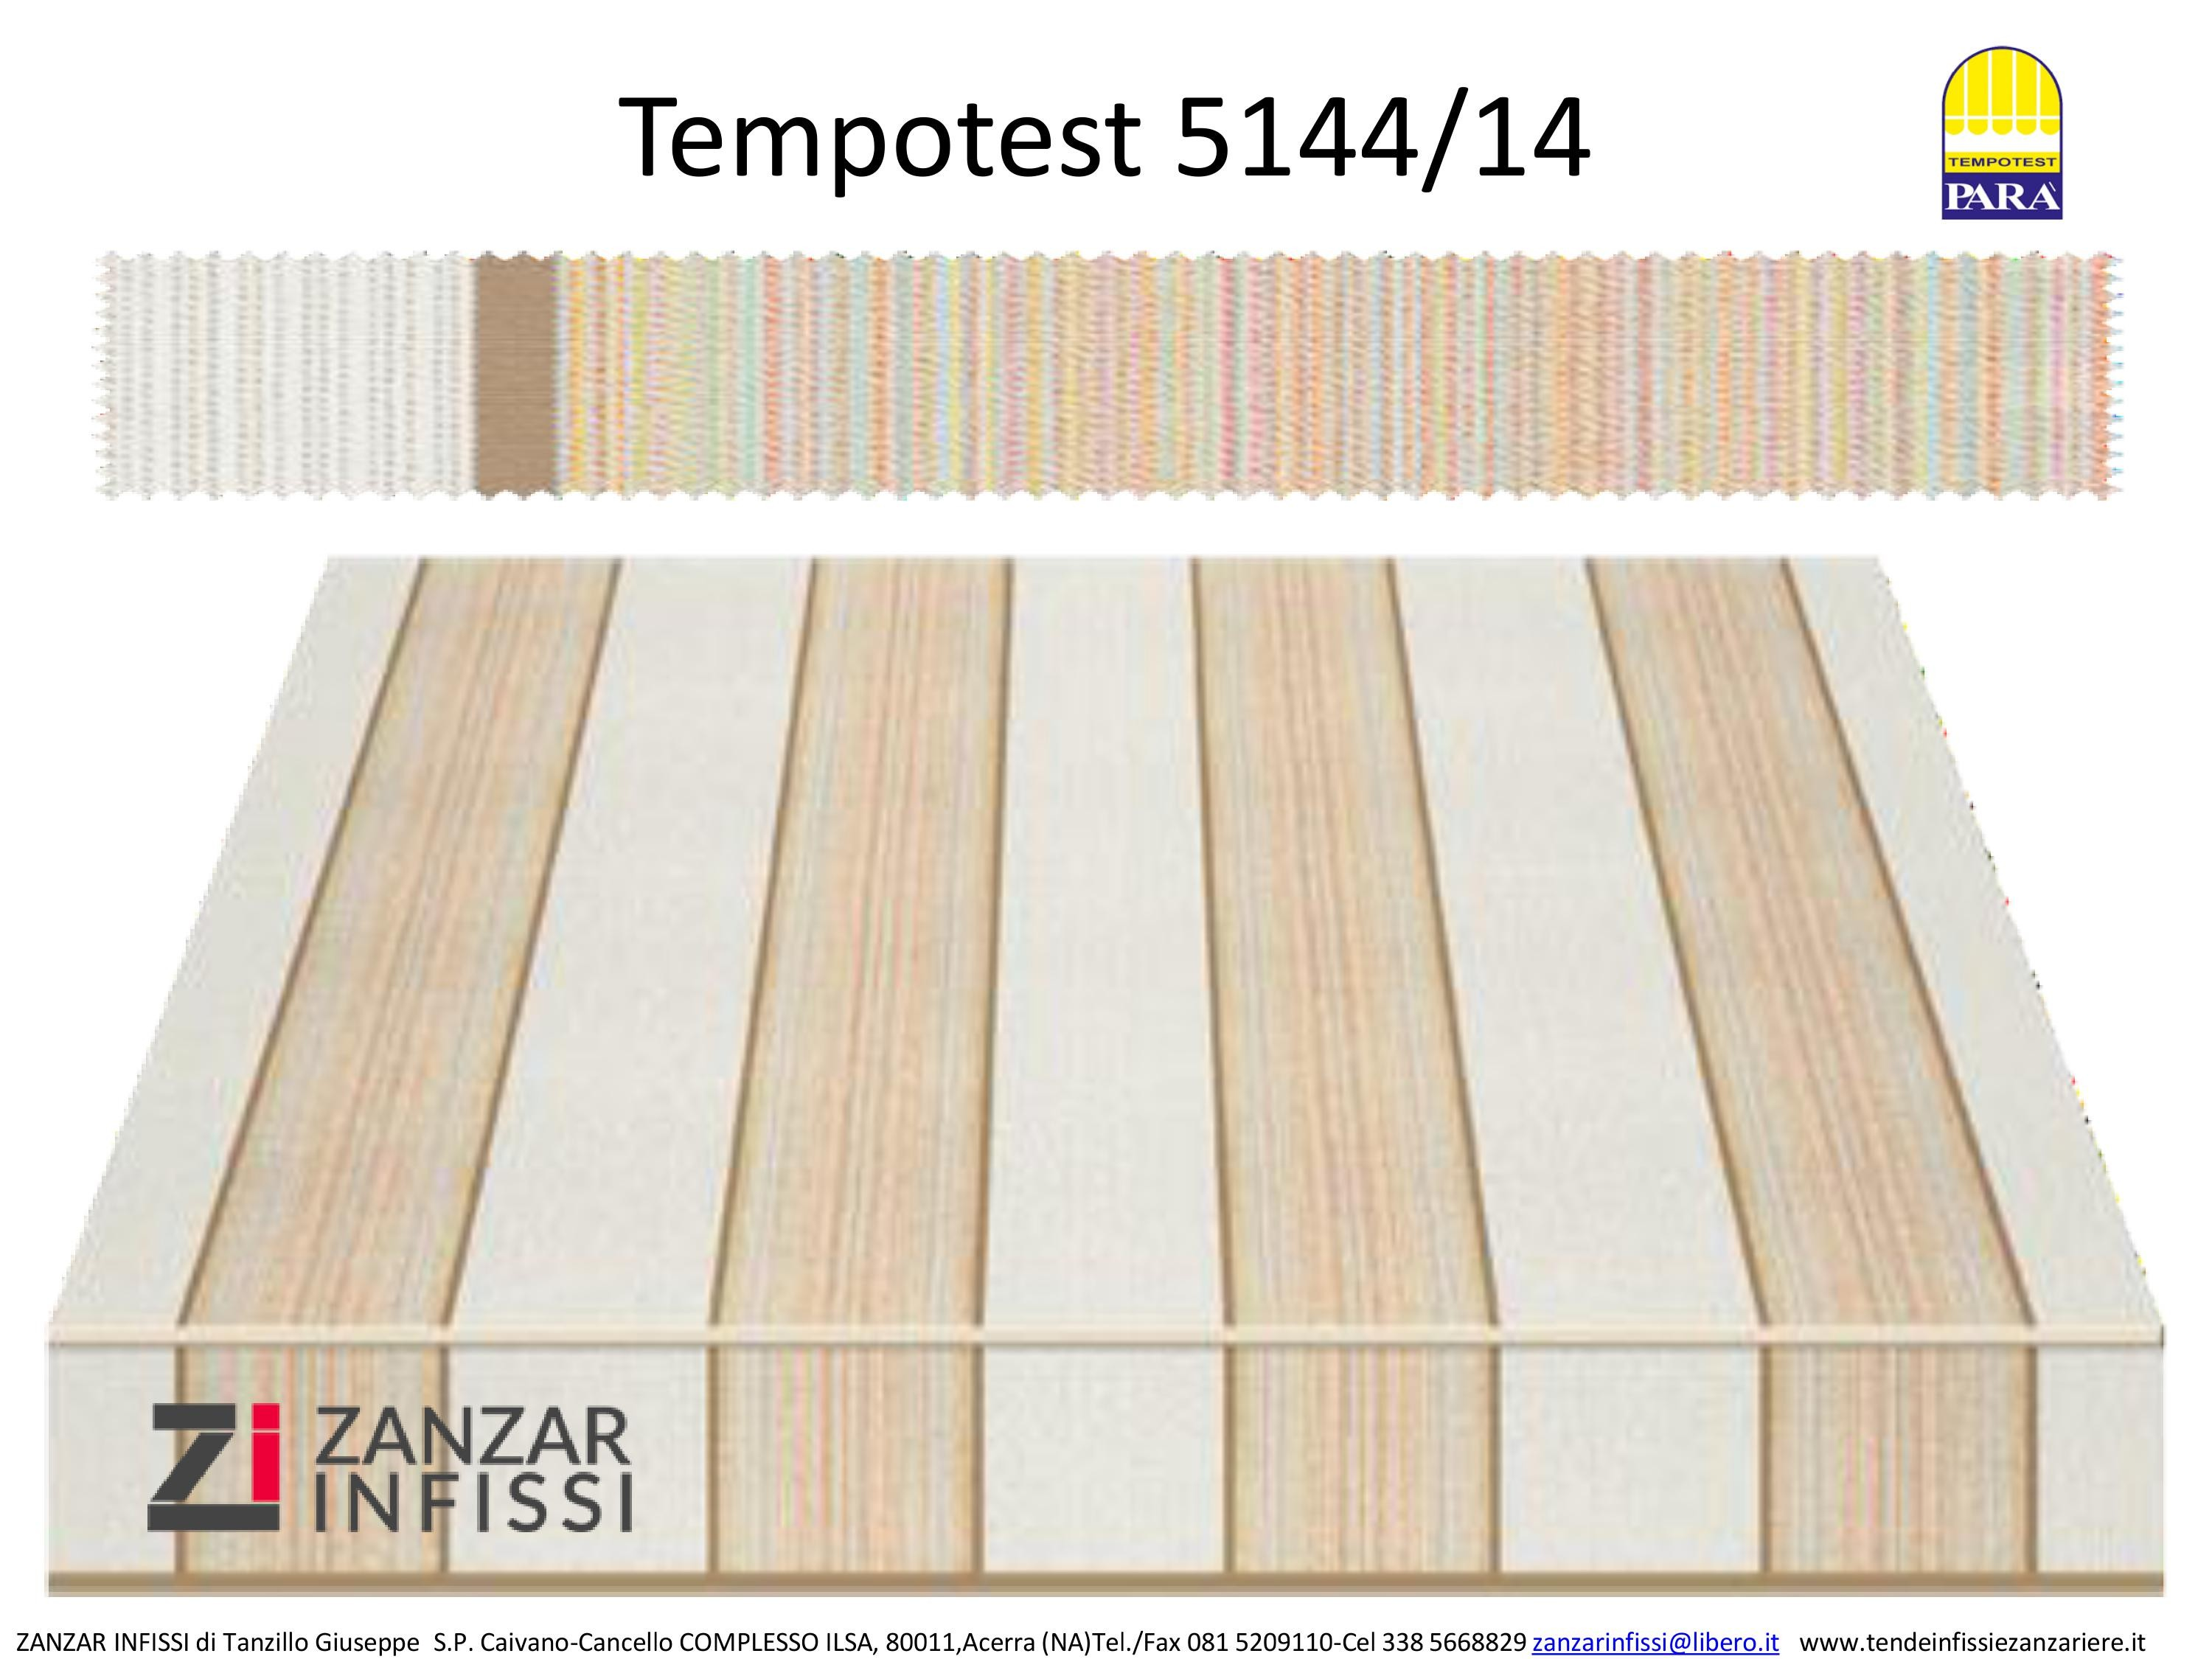 Tempotest 5144/14